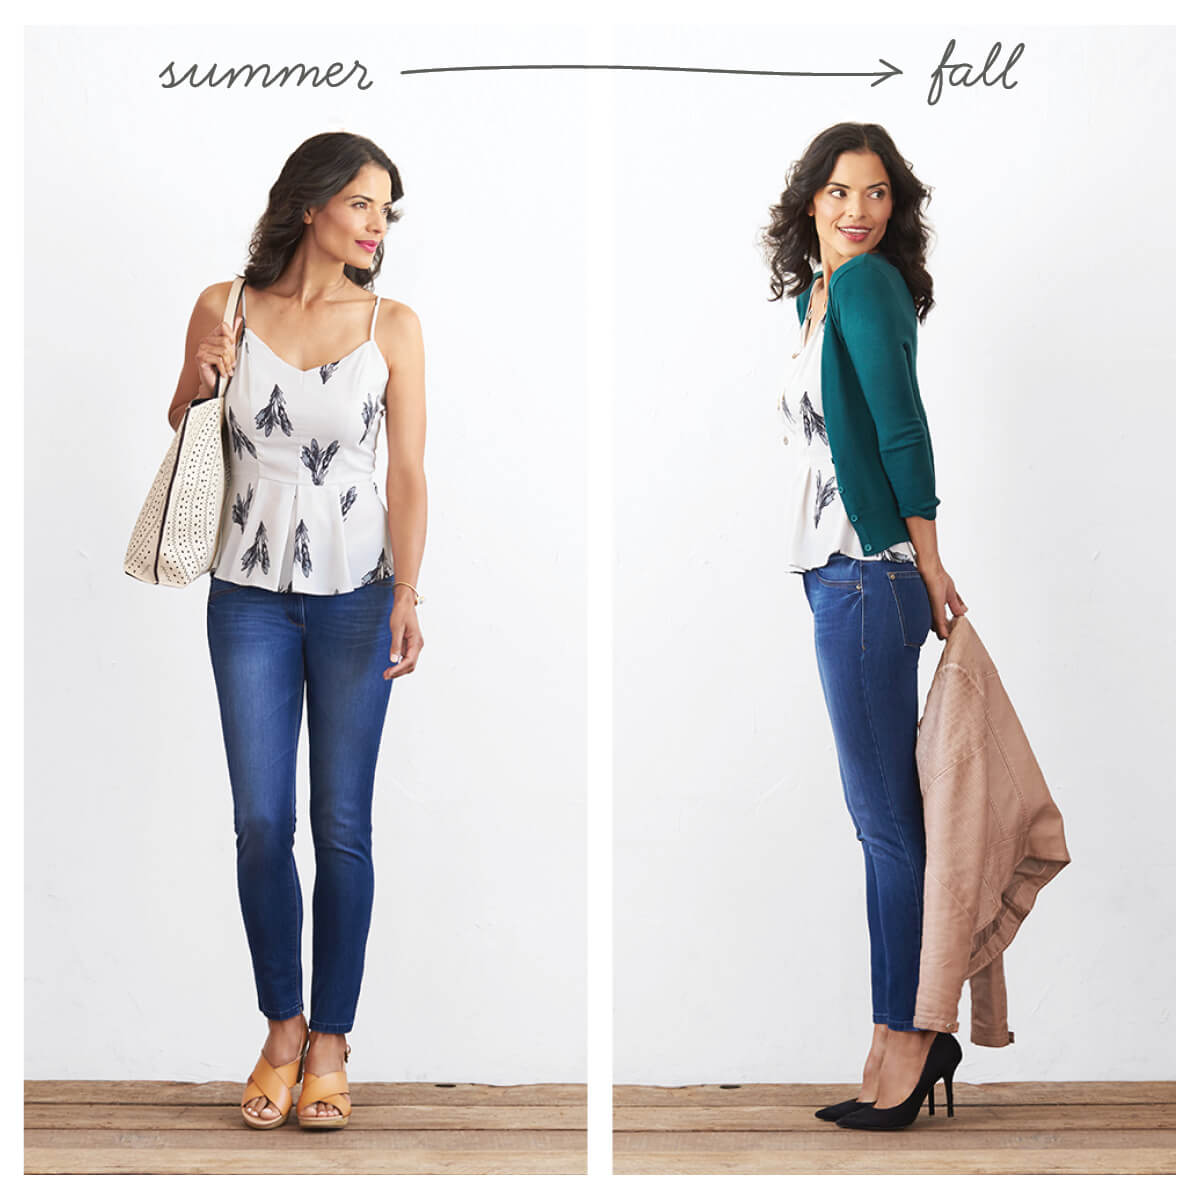 b50160e32a 5 Ways to Transition your Wardrobe from Summer to Fall